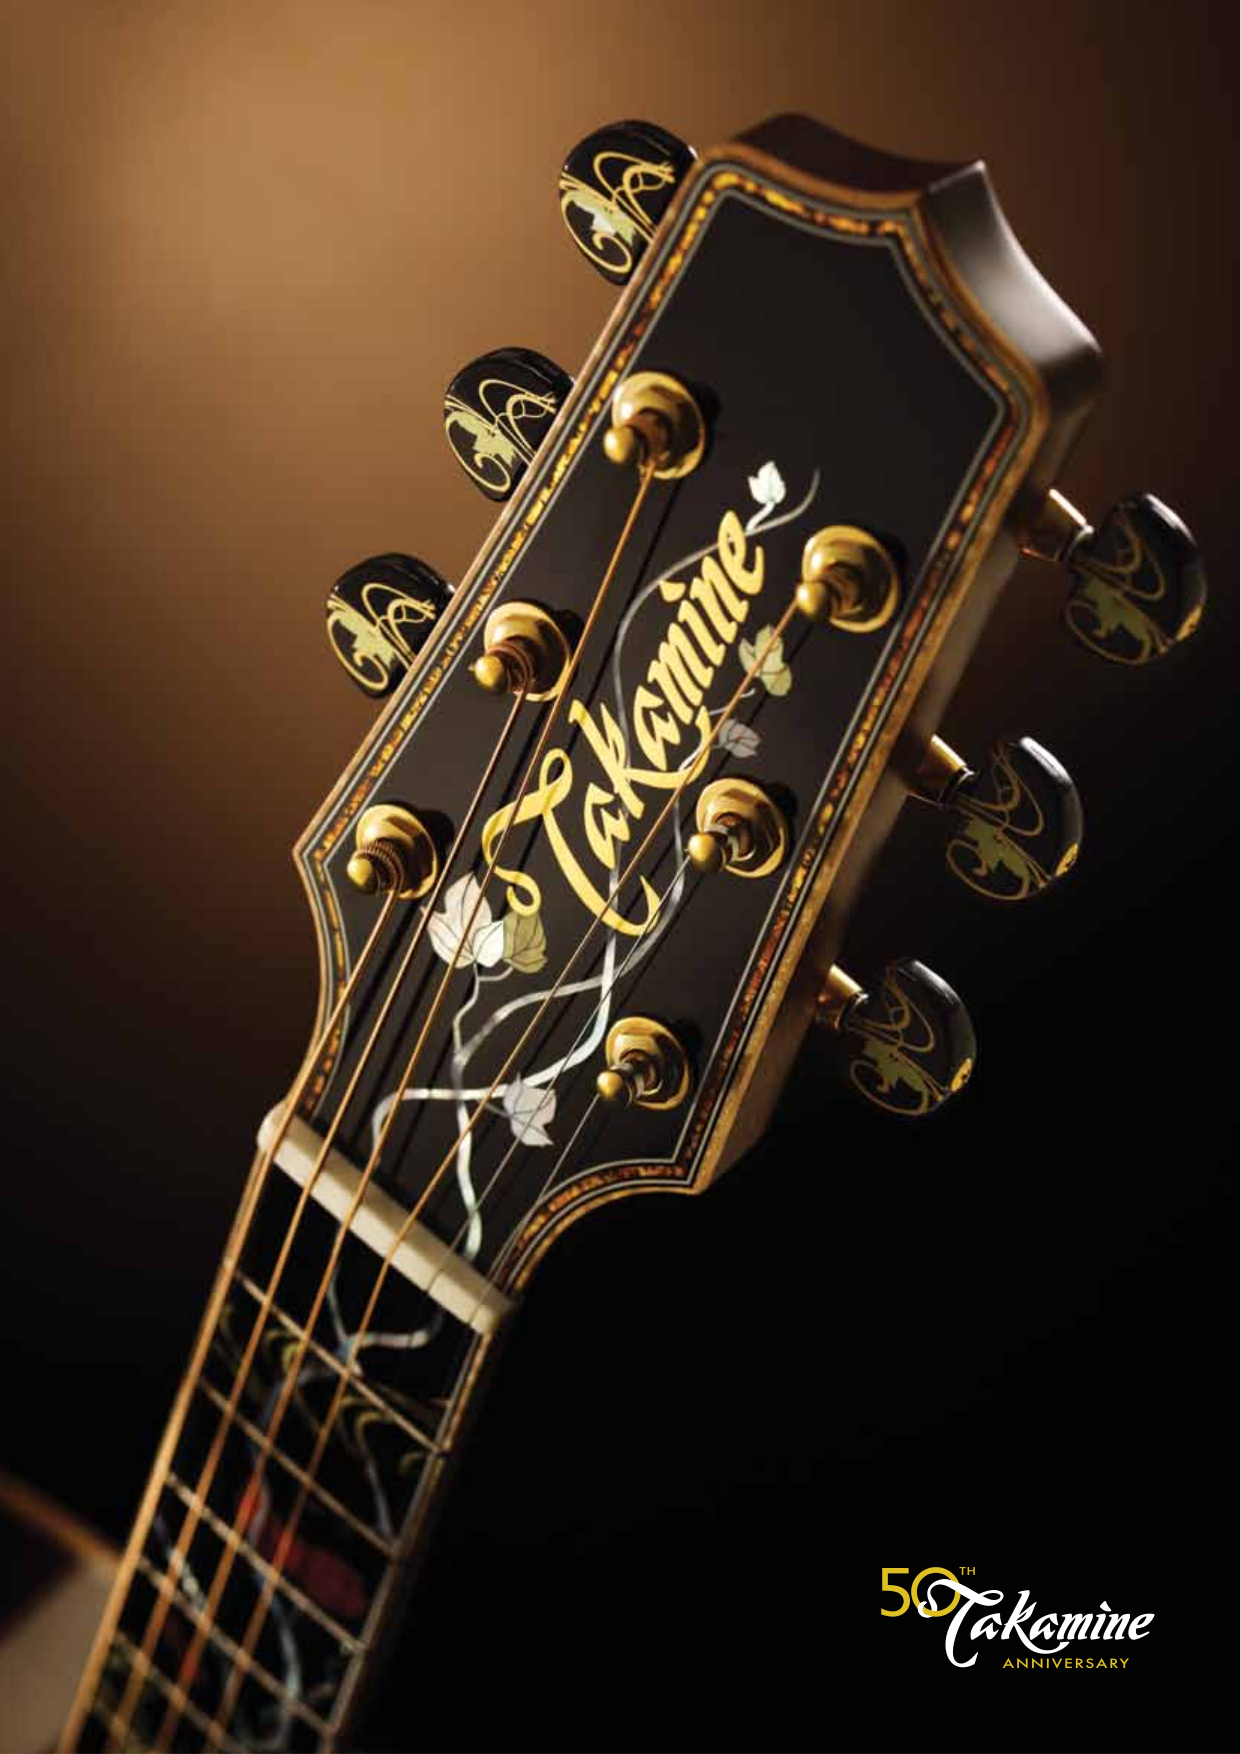 Pdf For Takamine Guitar TAN15C Manual